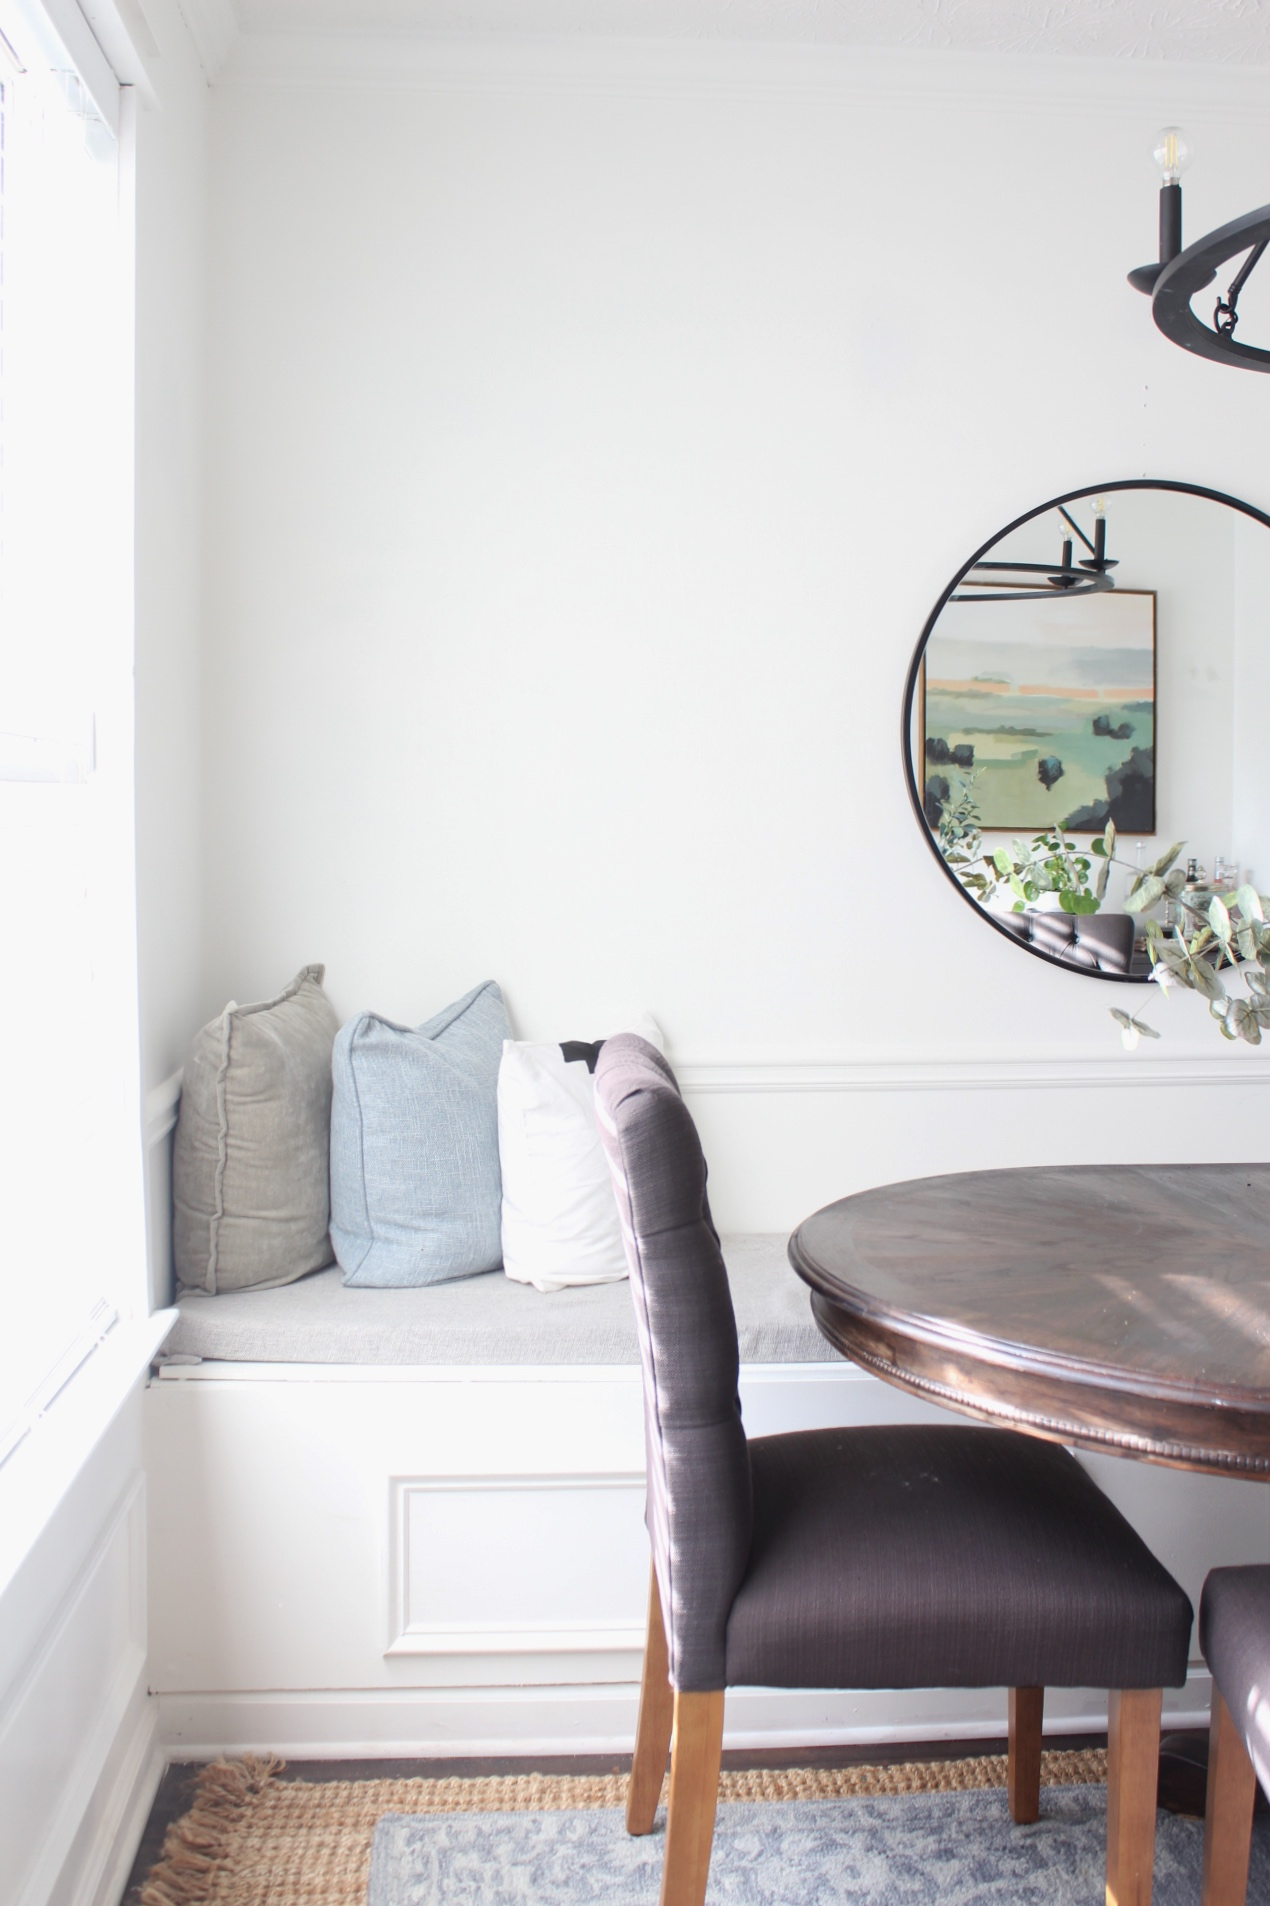 A Diy Built In Bench With Storage Tutorial For Any Space Of Your Home